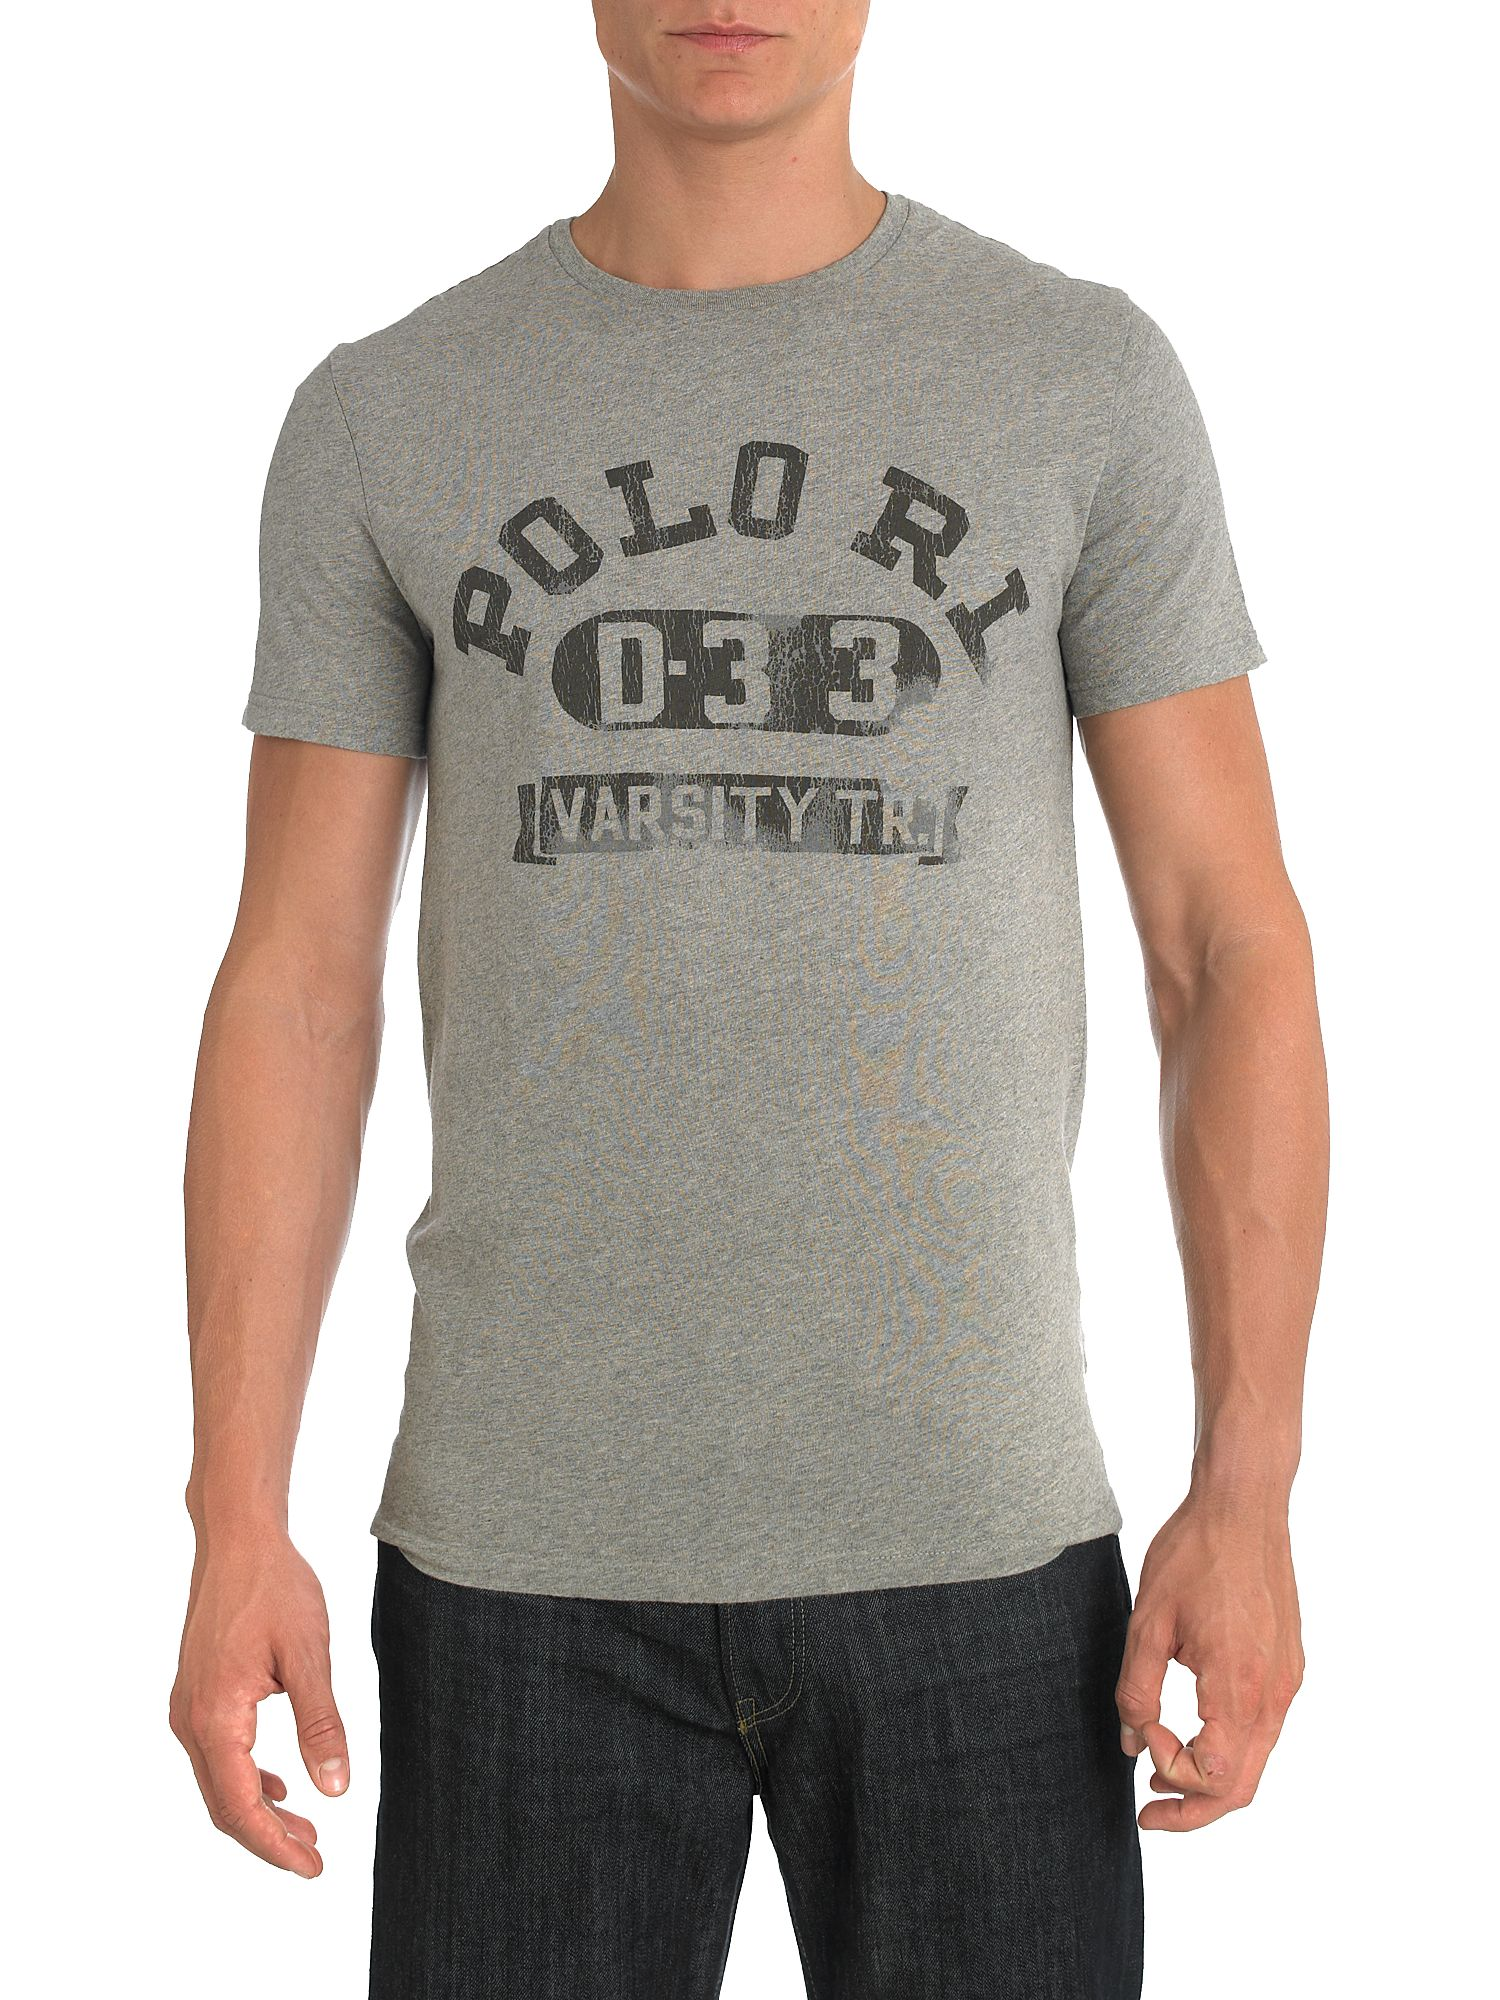 Ralph Lauren Short leeve logo T-shirt Light Grey product image